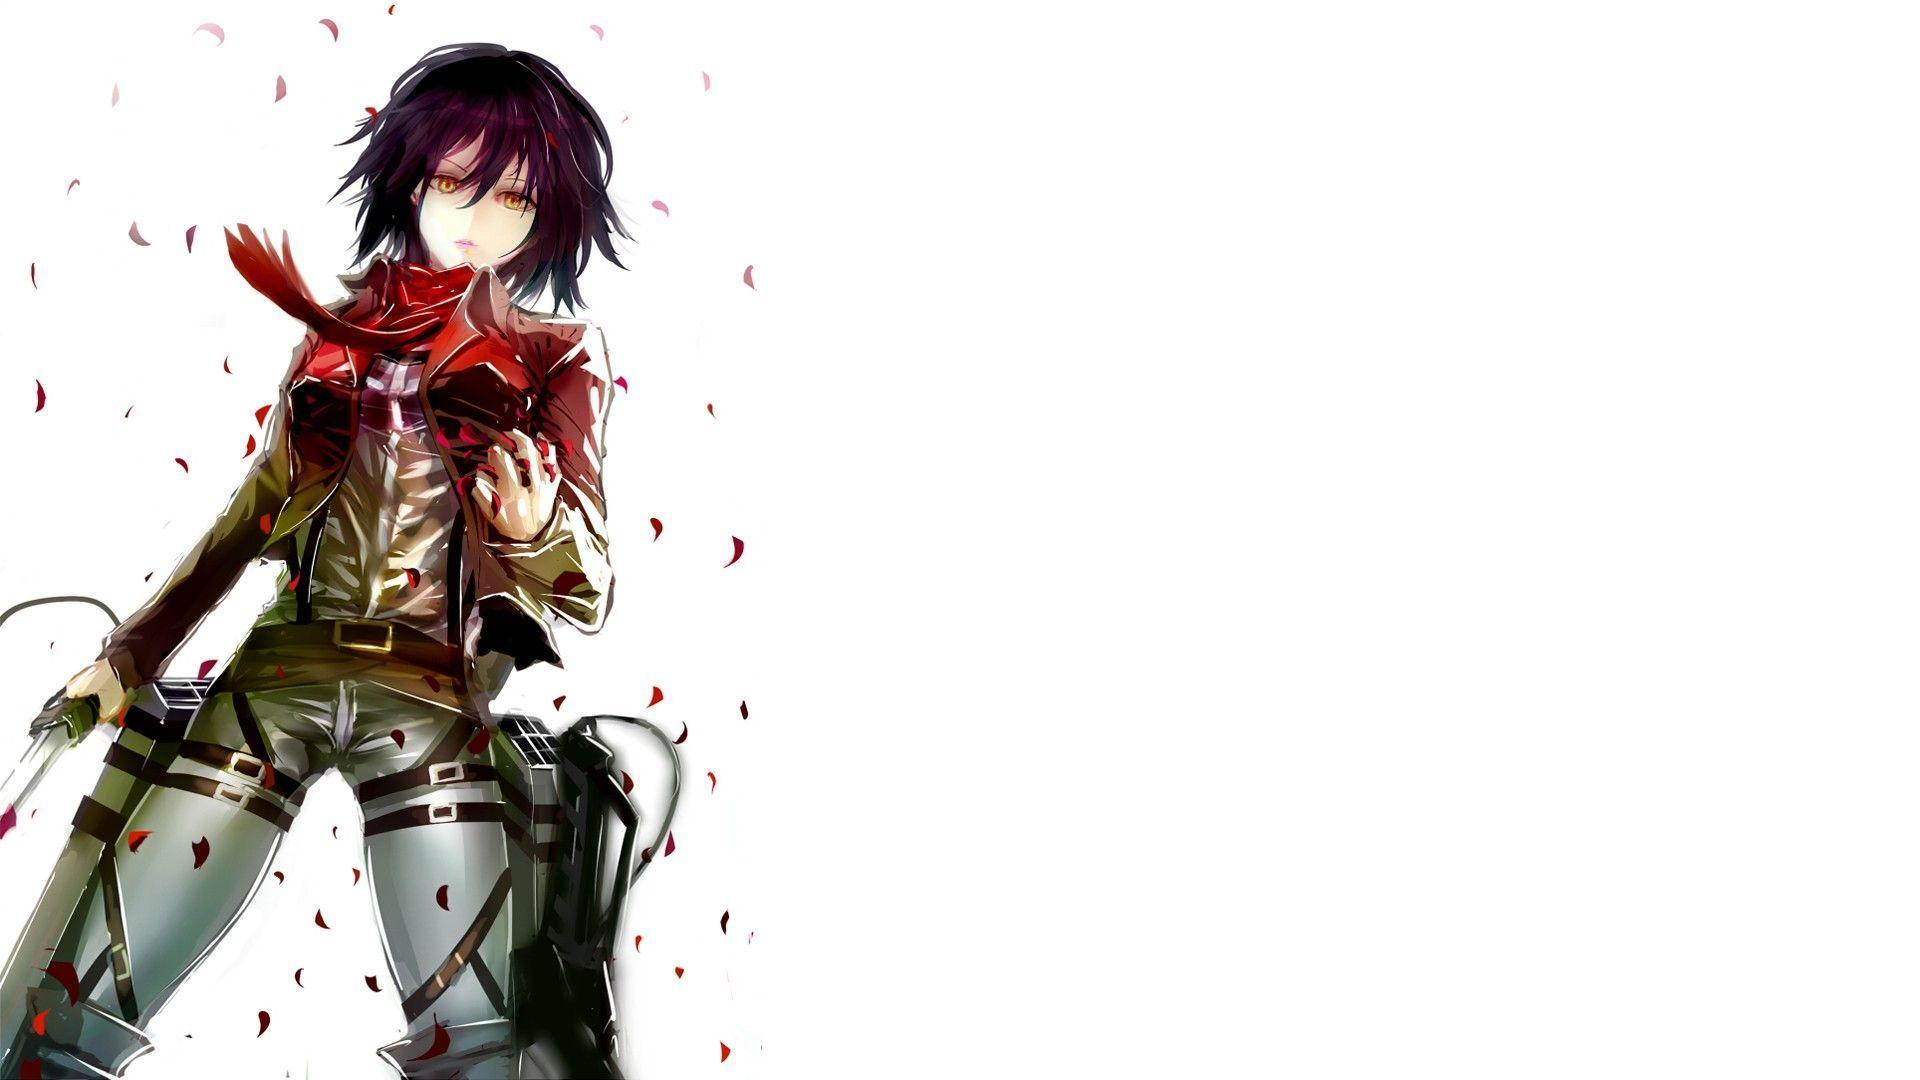 Mikasa attack on titan wallpaper 4k for desktop, iphone, pc, laptop, computer, android phone, smartphone, imac, macbook, tablet, mobile device. Attack On Titan Mikasa Ackerman Wallpapers - Wallpaper Cave